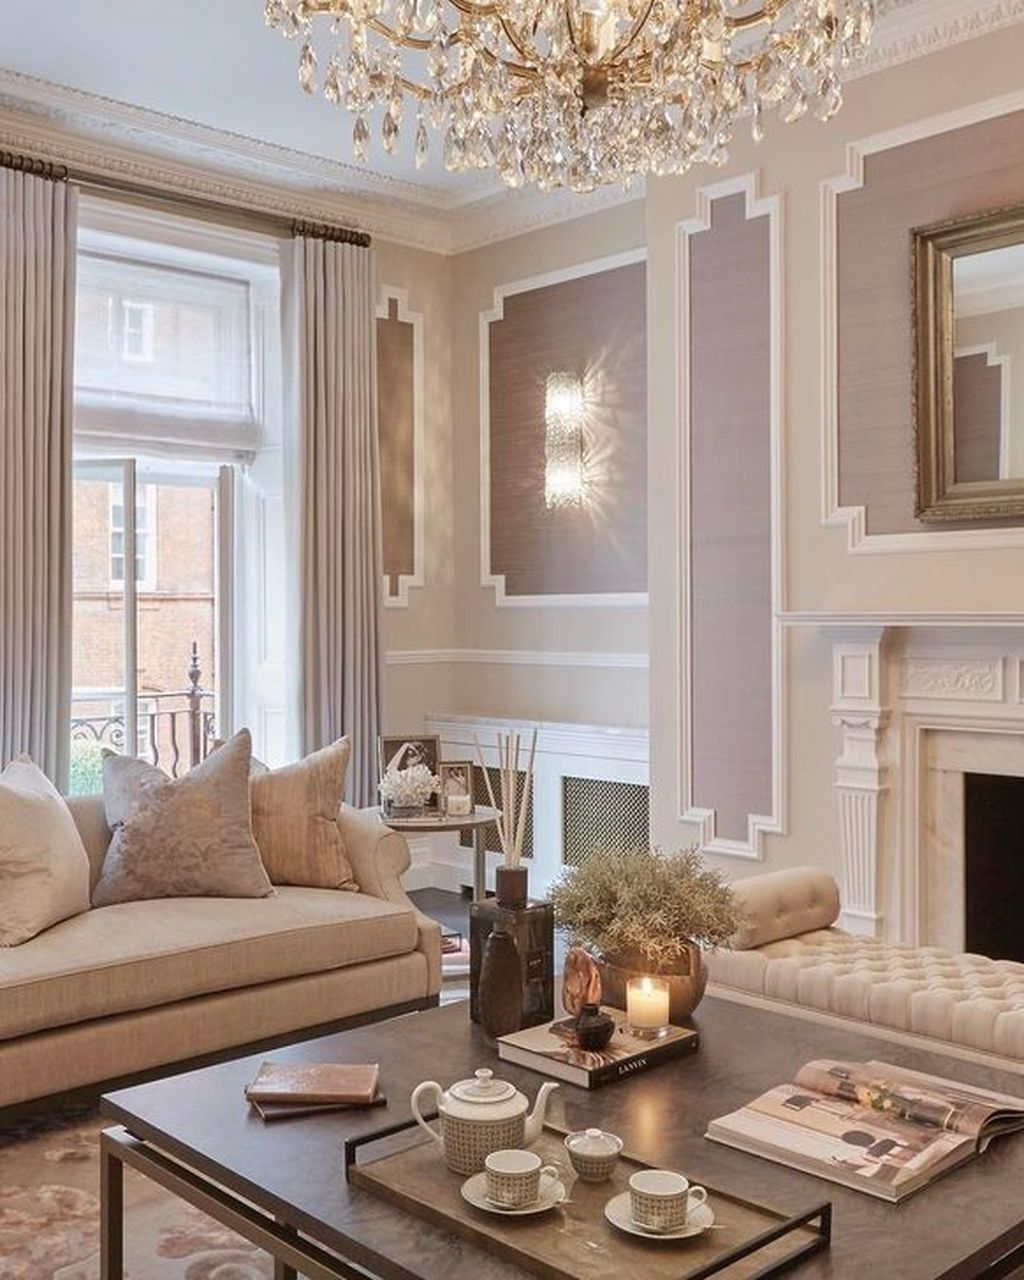 38+ Country living room ideas 2020 ideas in 2021